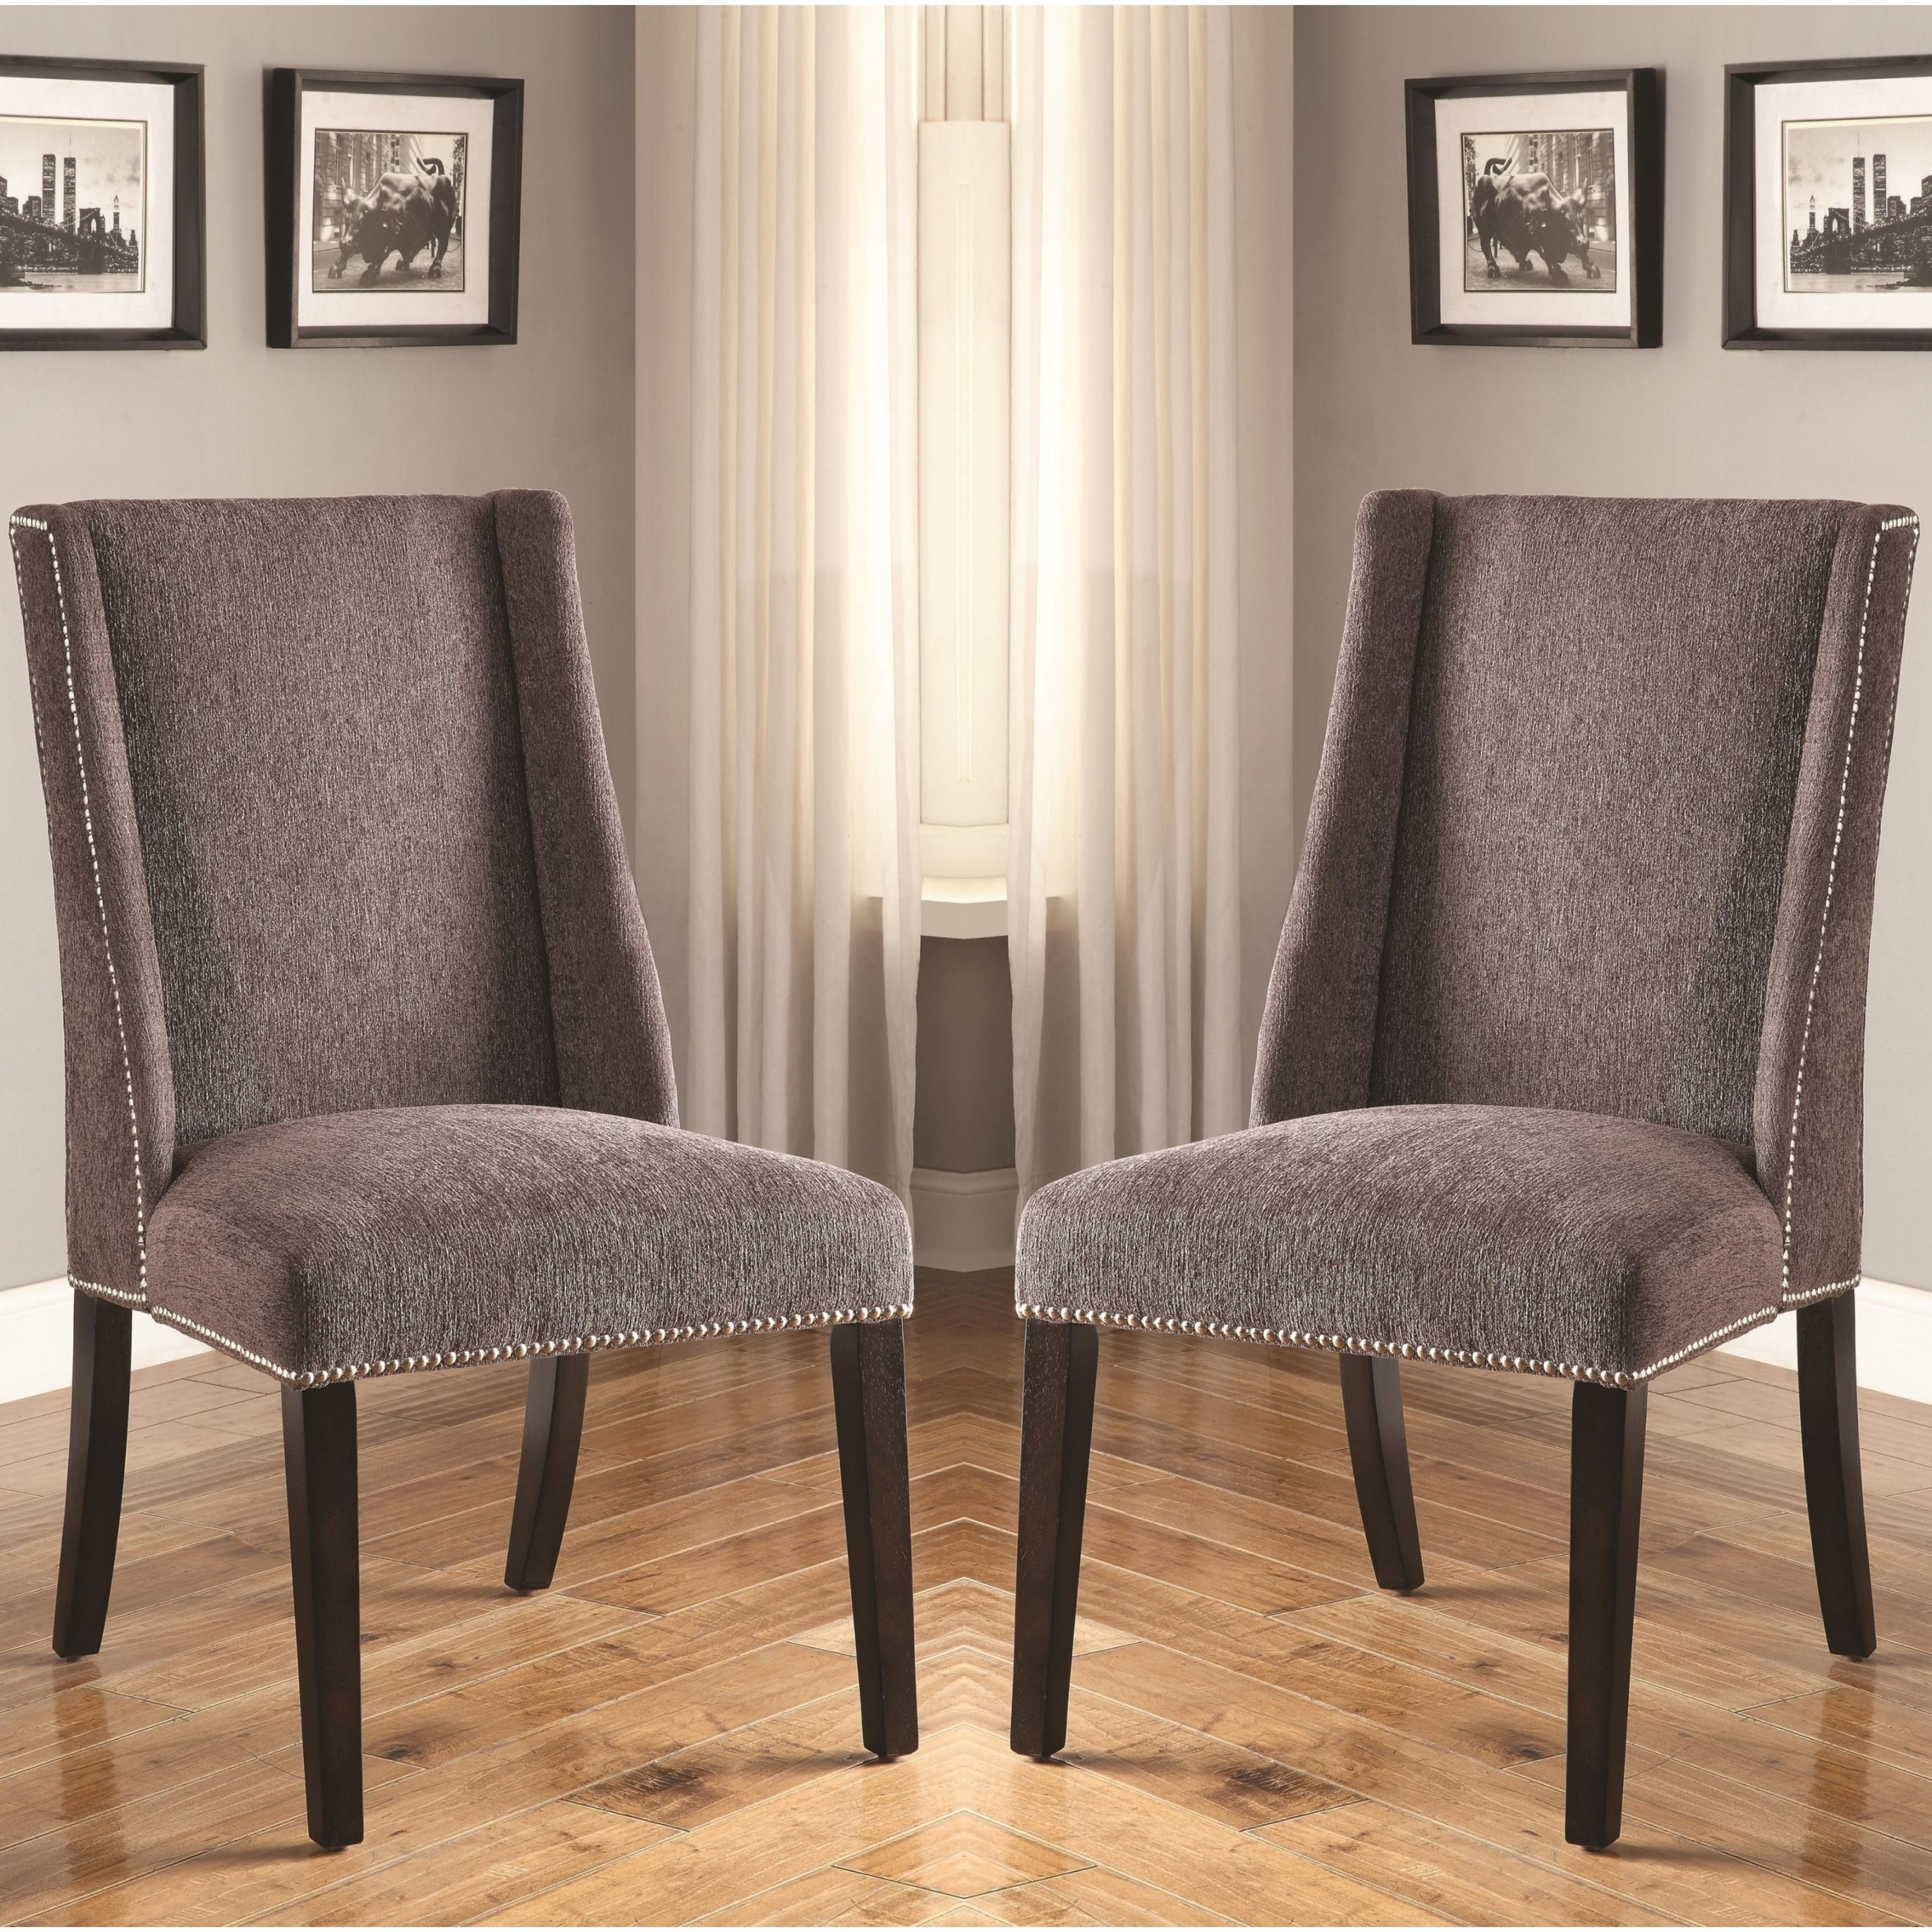 Decatur Wing Back Design Grey Upholstered Chairs With Nailhead